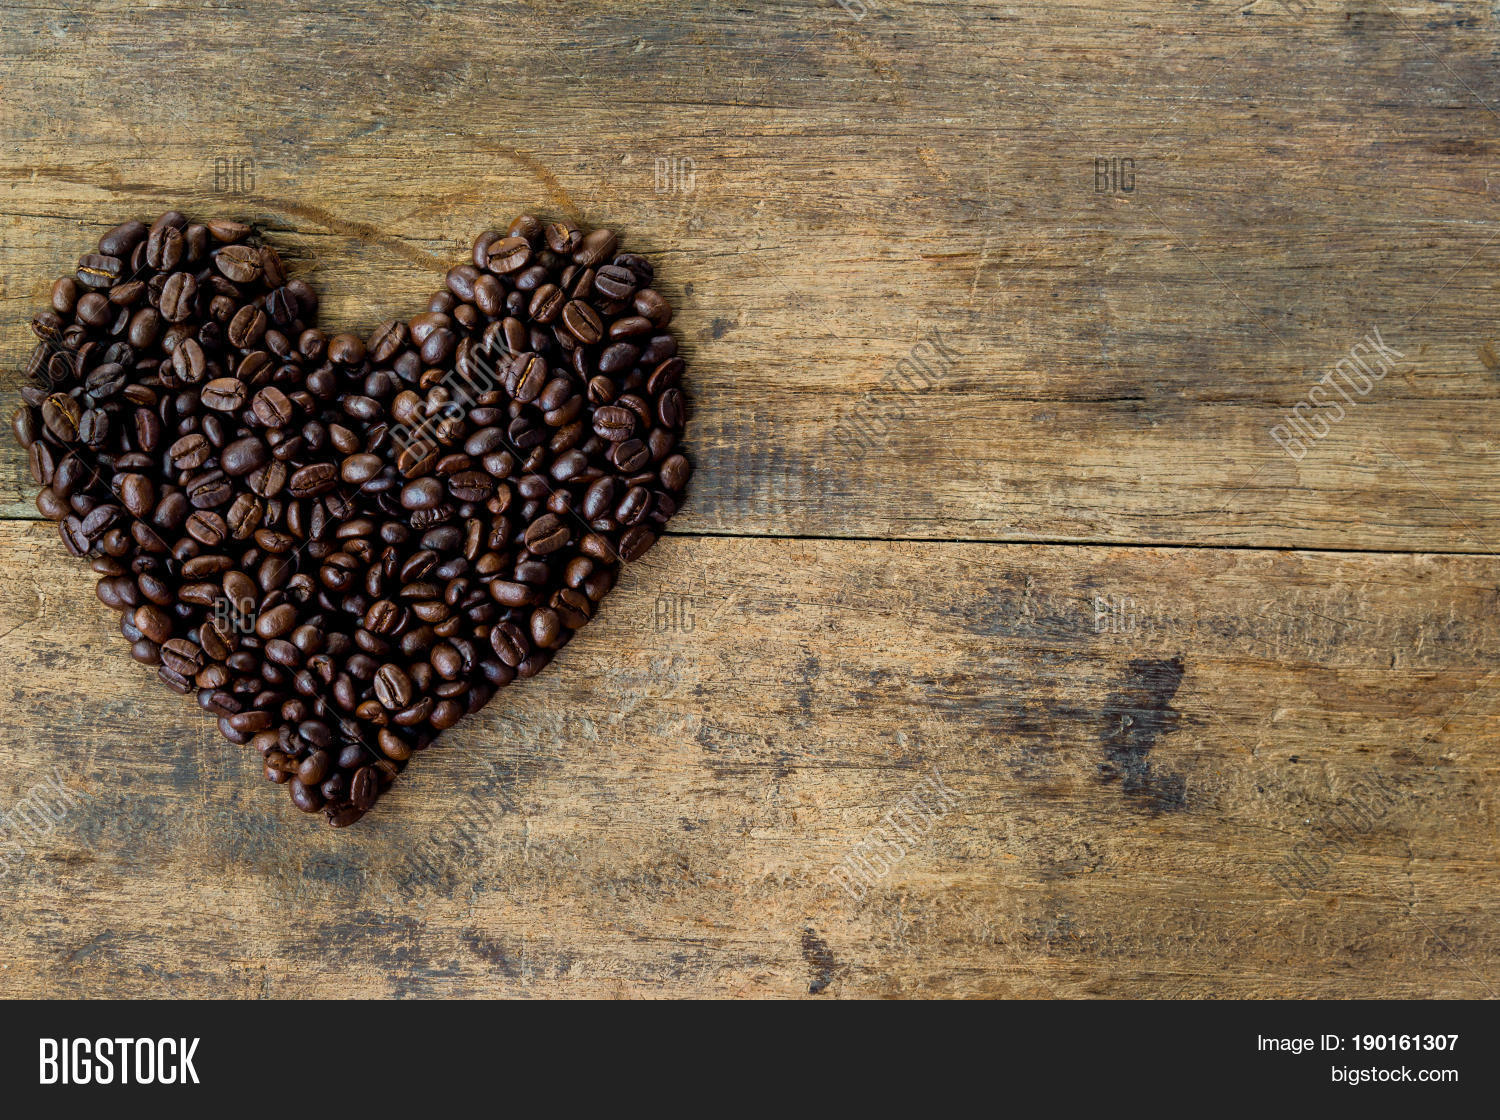 Lovely Heart Shape By Roasted Coffee Beans On Rustic Wood